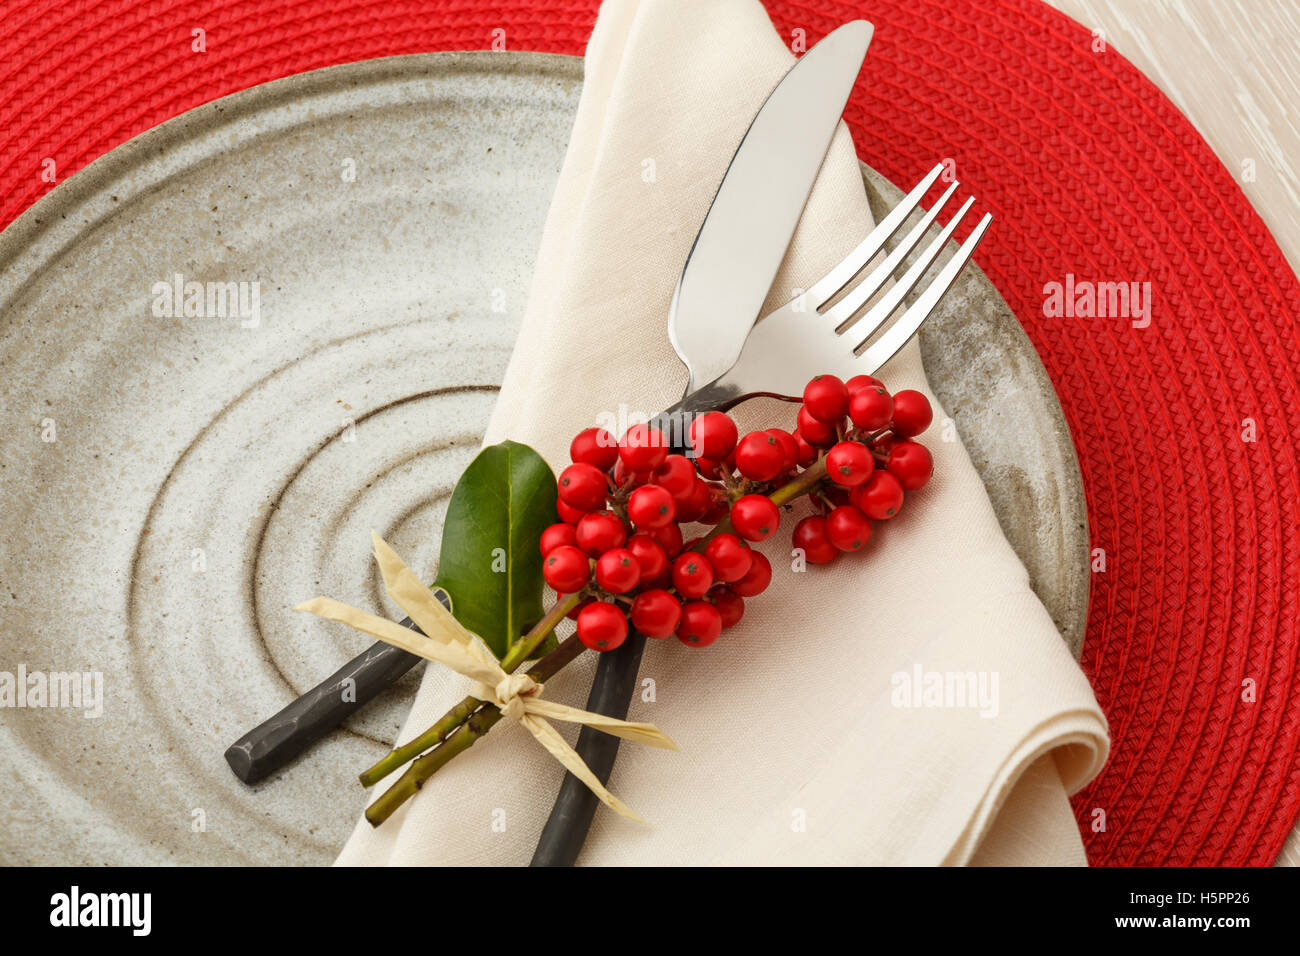 Casual artisanal Christmas table setting place setting with rustic silverware, handmade pottery plate and natural - Stock Image